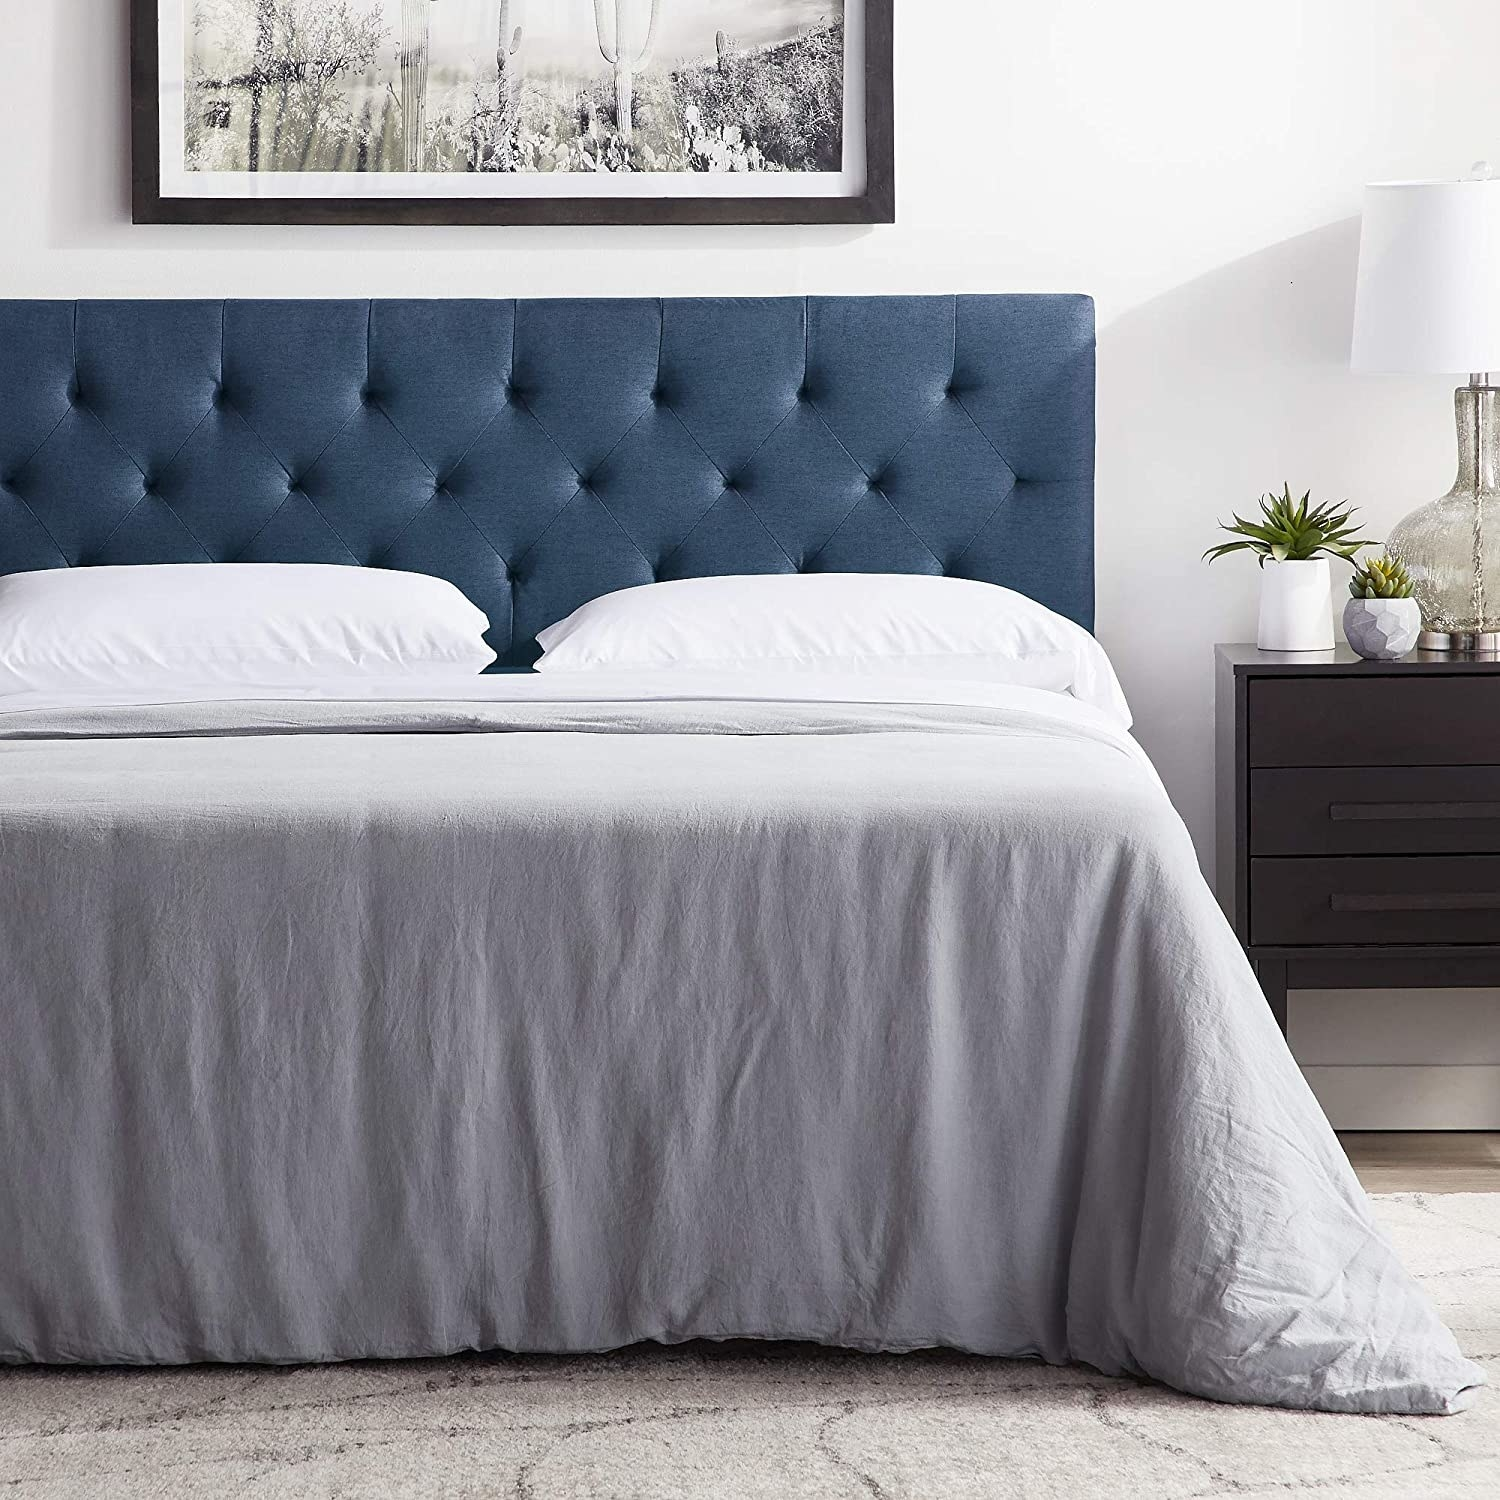 The tufted headboard in cobalt blue